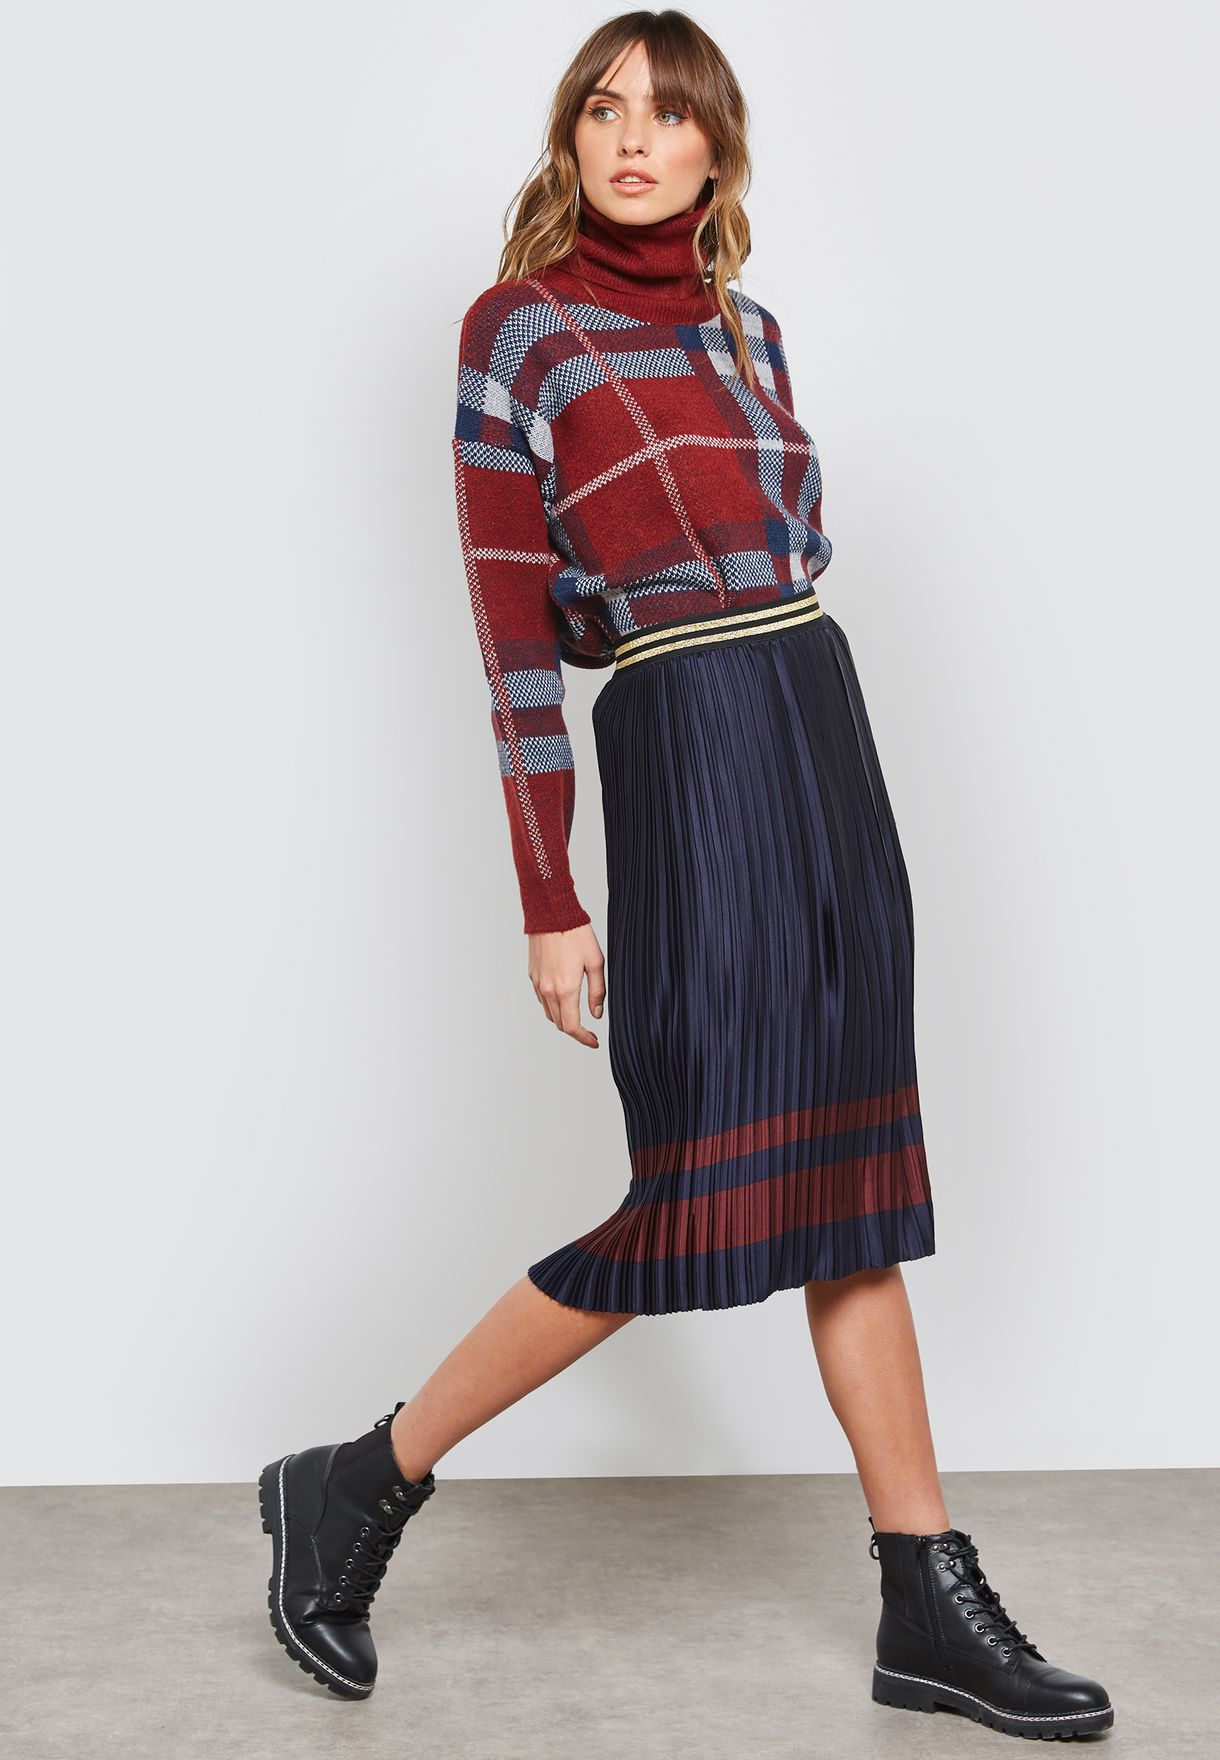 29cb2e5d8b Shop B Young navy Contrast Striped Pleated Skirt 20804696 for Women ...